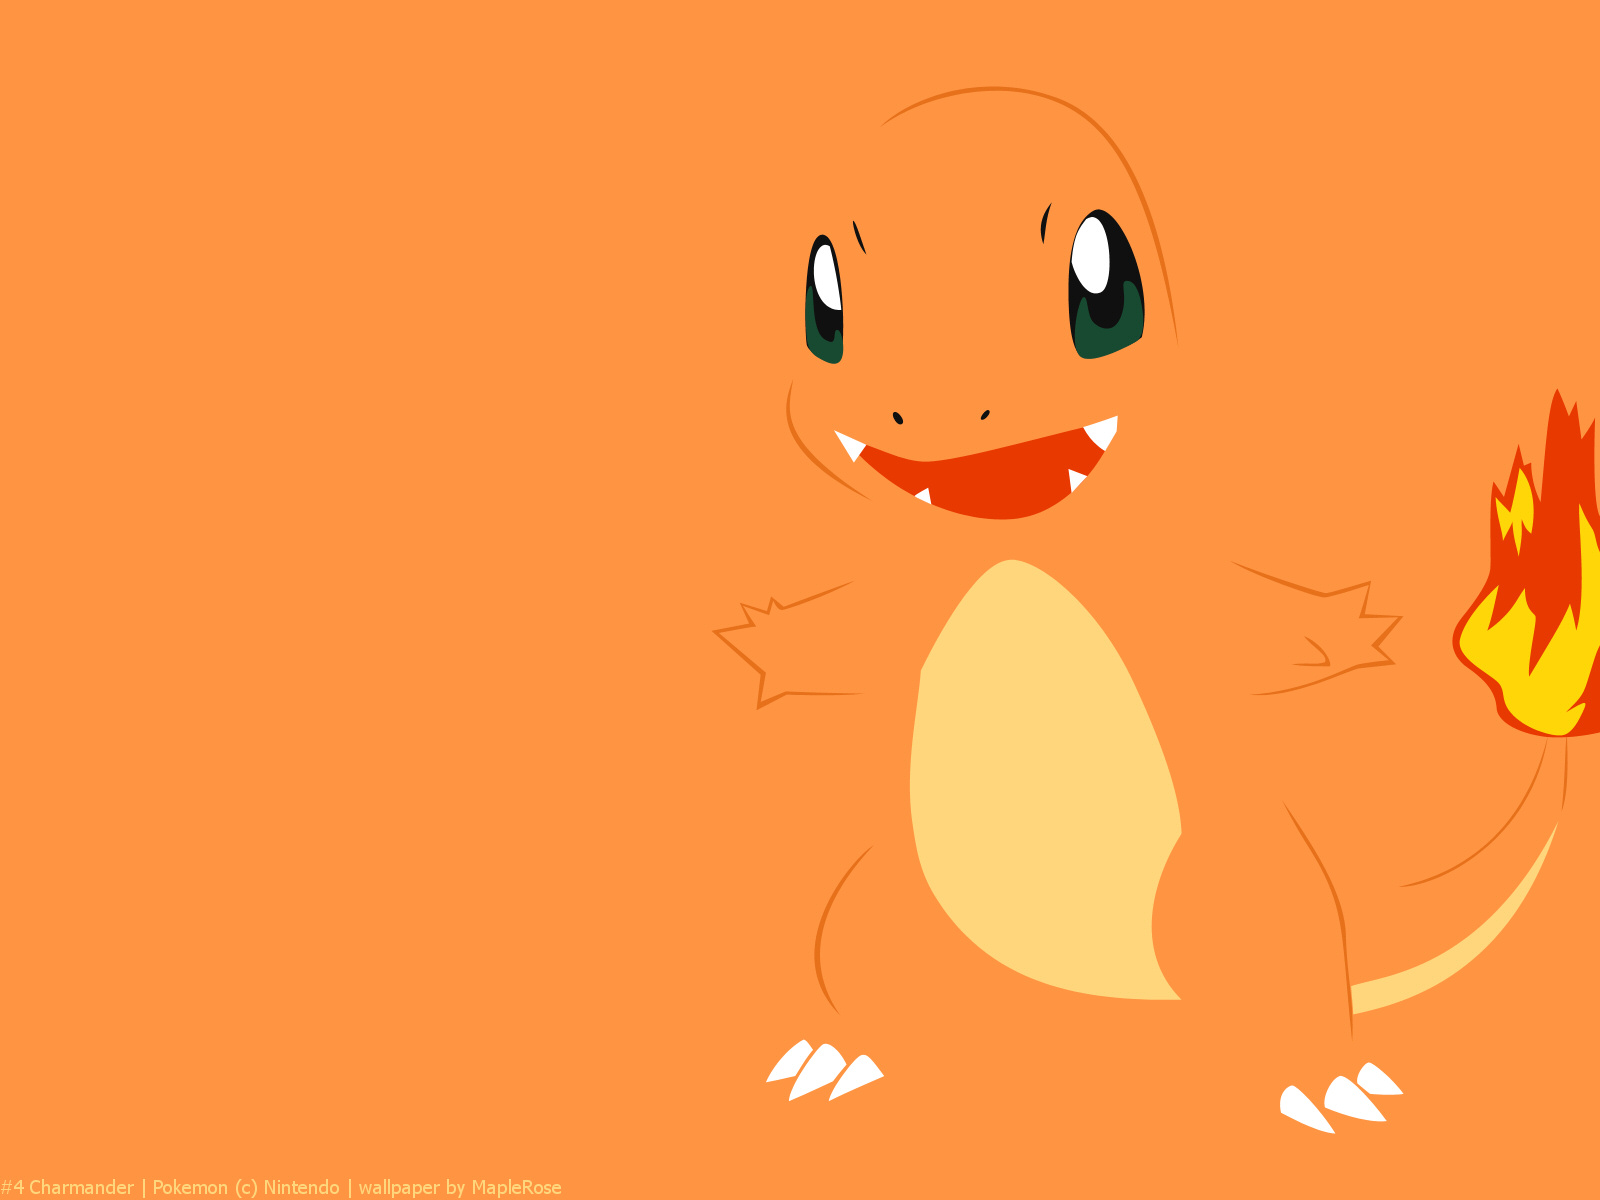 Charmander A flame burns on the tip of its tail from birth It is 1600x1200